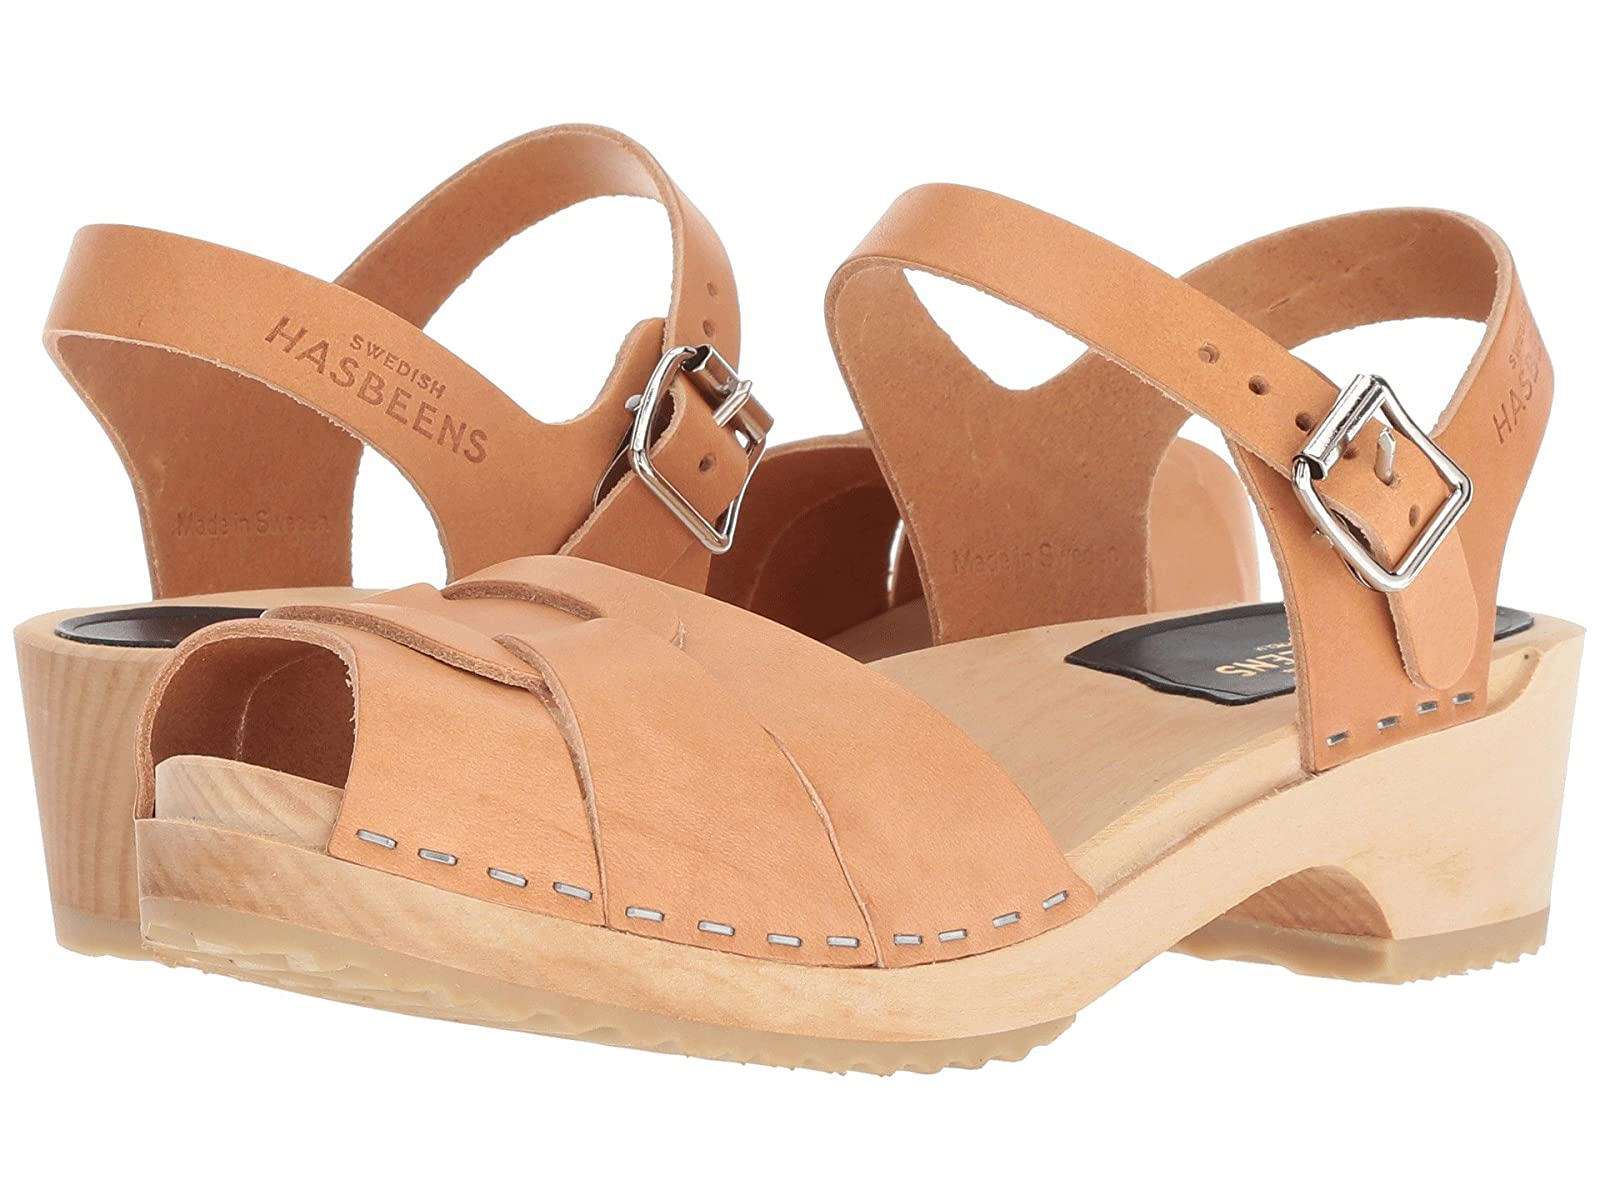 Swedish Hasbeens Peep Toe LowAtmospheric grades have affordable shoes